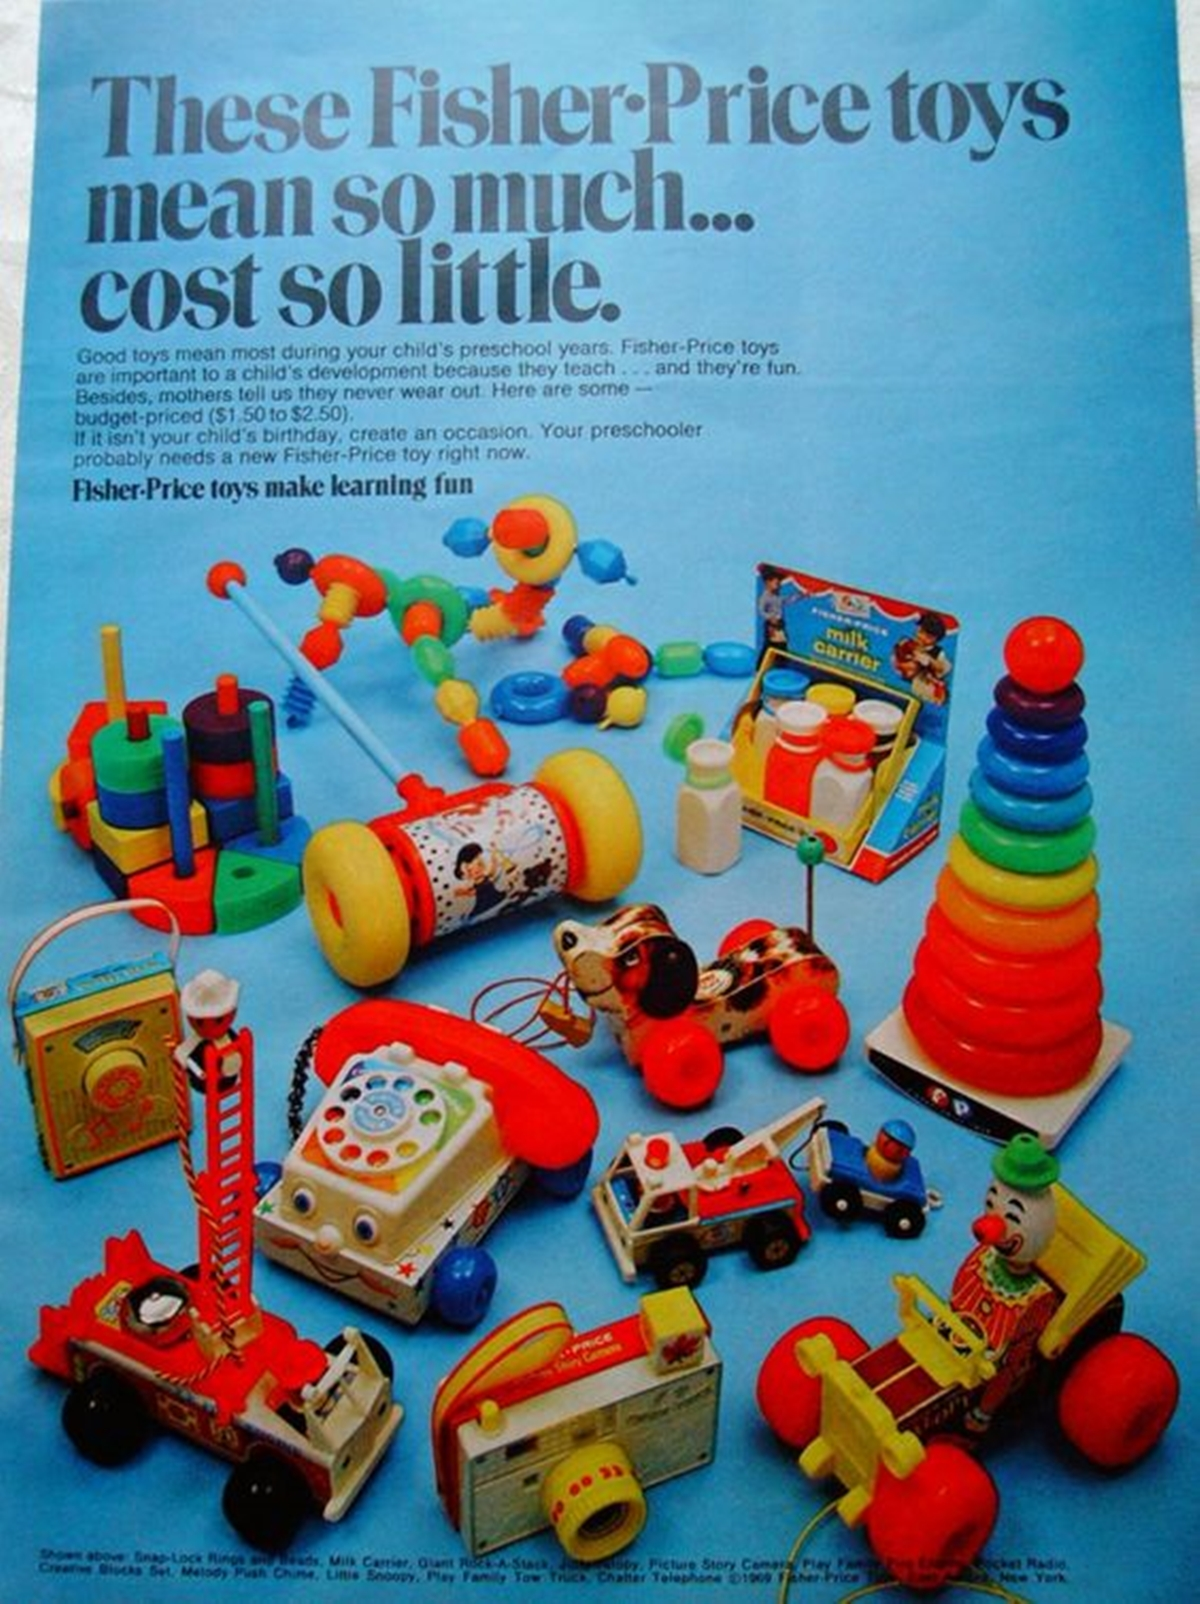 11 8 16 Retro Toy Adverts That Will Fill You With Nostalgia